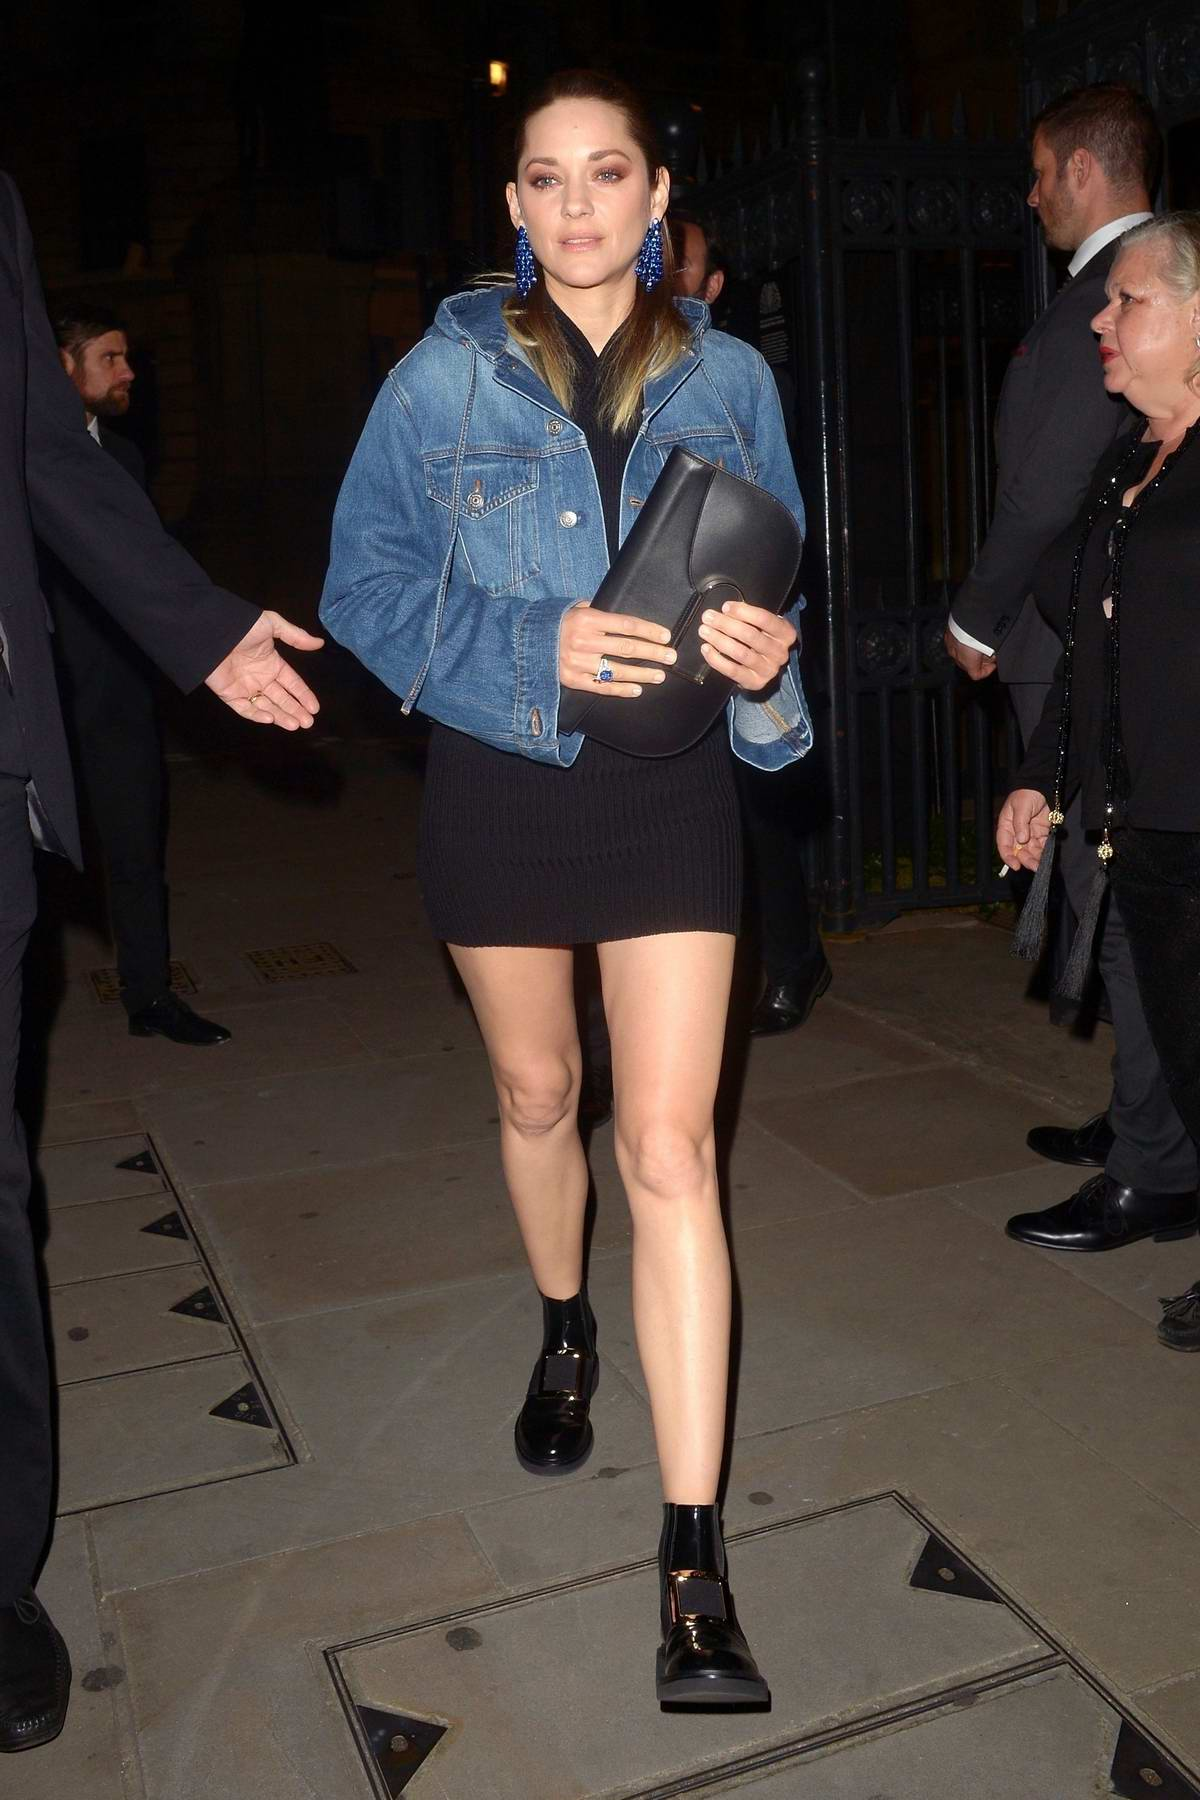 Marion Cotillard seen leaving the Chopard Bond Street Boutique reopening dinner at Banqueting House in Whitehall, London, UK